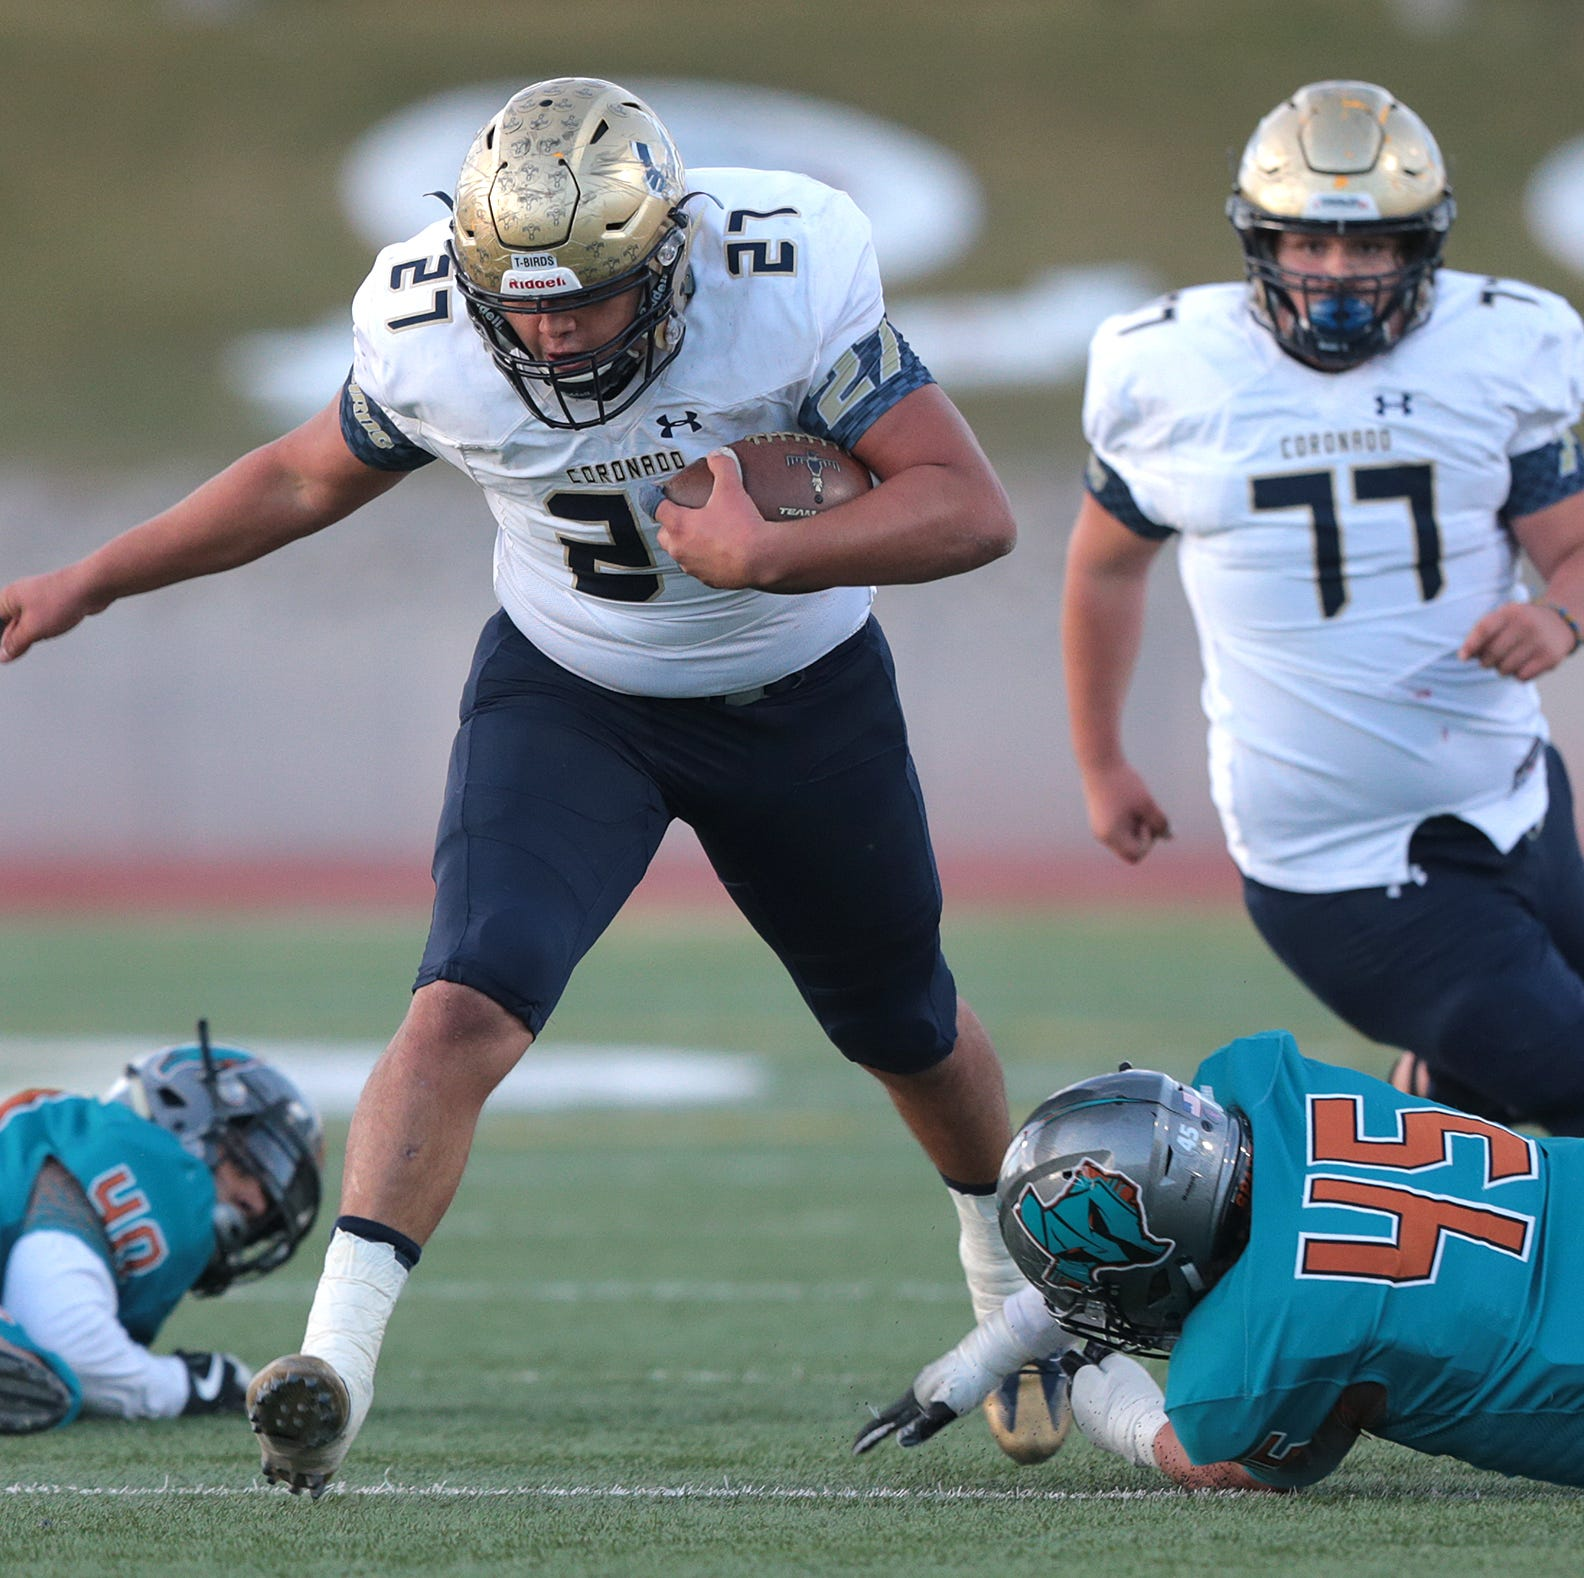 The Coronado Thunderbirds earned their way into the playoffs Friday night with a 42-25 win over Pebble Hills at the Socorro Student Activities Complex.